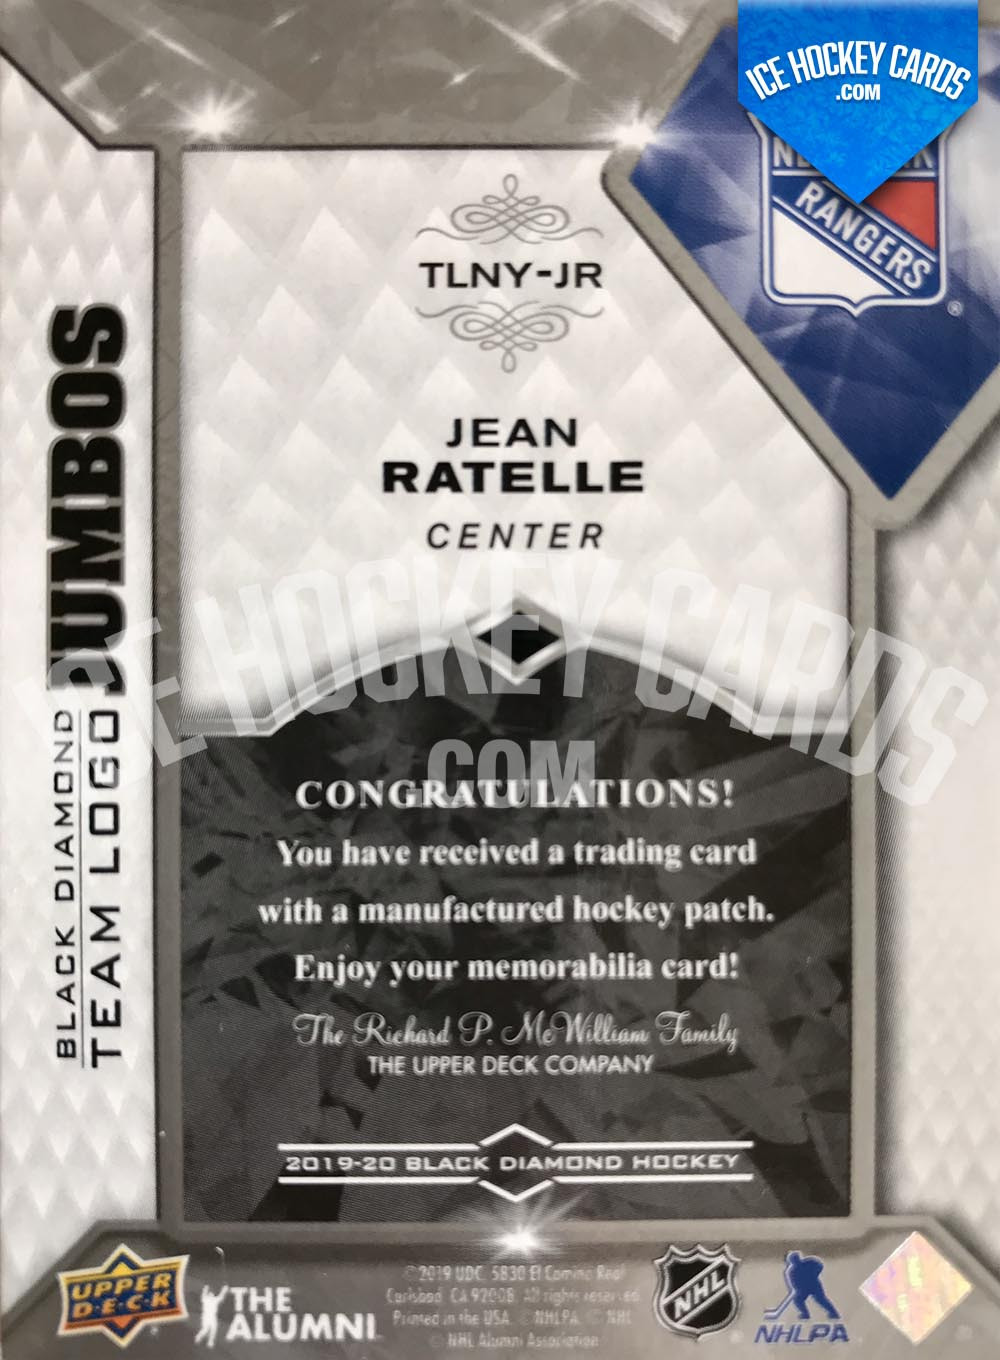 Upper Deck - Black Diamond 2019-20 - Jean Ratelle The Alumni Team Logo Jumbos Card back